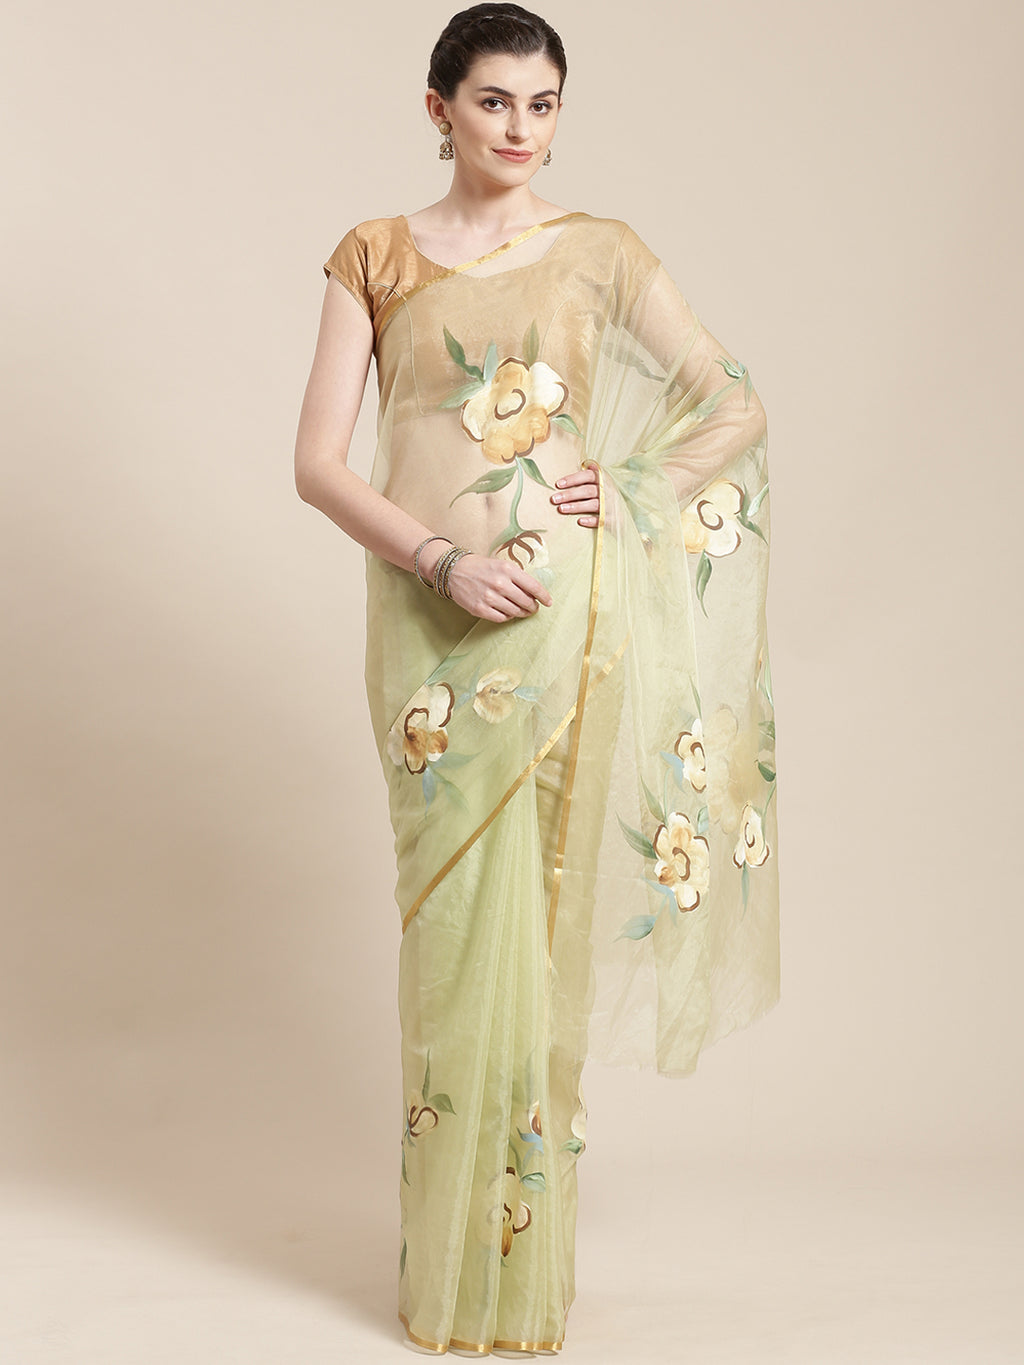 Lime Green & Brown Floral Hand Painted Organza Saree-Saree-Kalakari India-BHKPSA0124-Hand Painted, Organza, Sarees, Sustainable Fabrics, Traditional Weave-[Linen,Ethnic,wear,Fashionista,Handloom,Handicraft,Indigo,blockprint,block,print,Cotton,Chanderi,Blue, latest,classy,party,bollywood,trendy,summer,style,traditional,formal,elegant,unique,style,hand,block,print, dabu,booti,gift,present,glamorous,affordable,collectible,Sari,Saree,printed, holi, Diwali, birthday, anniversary, sustainable, organic